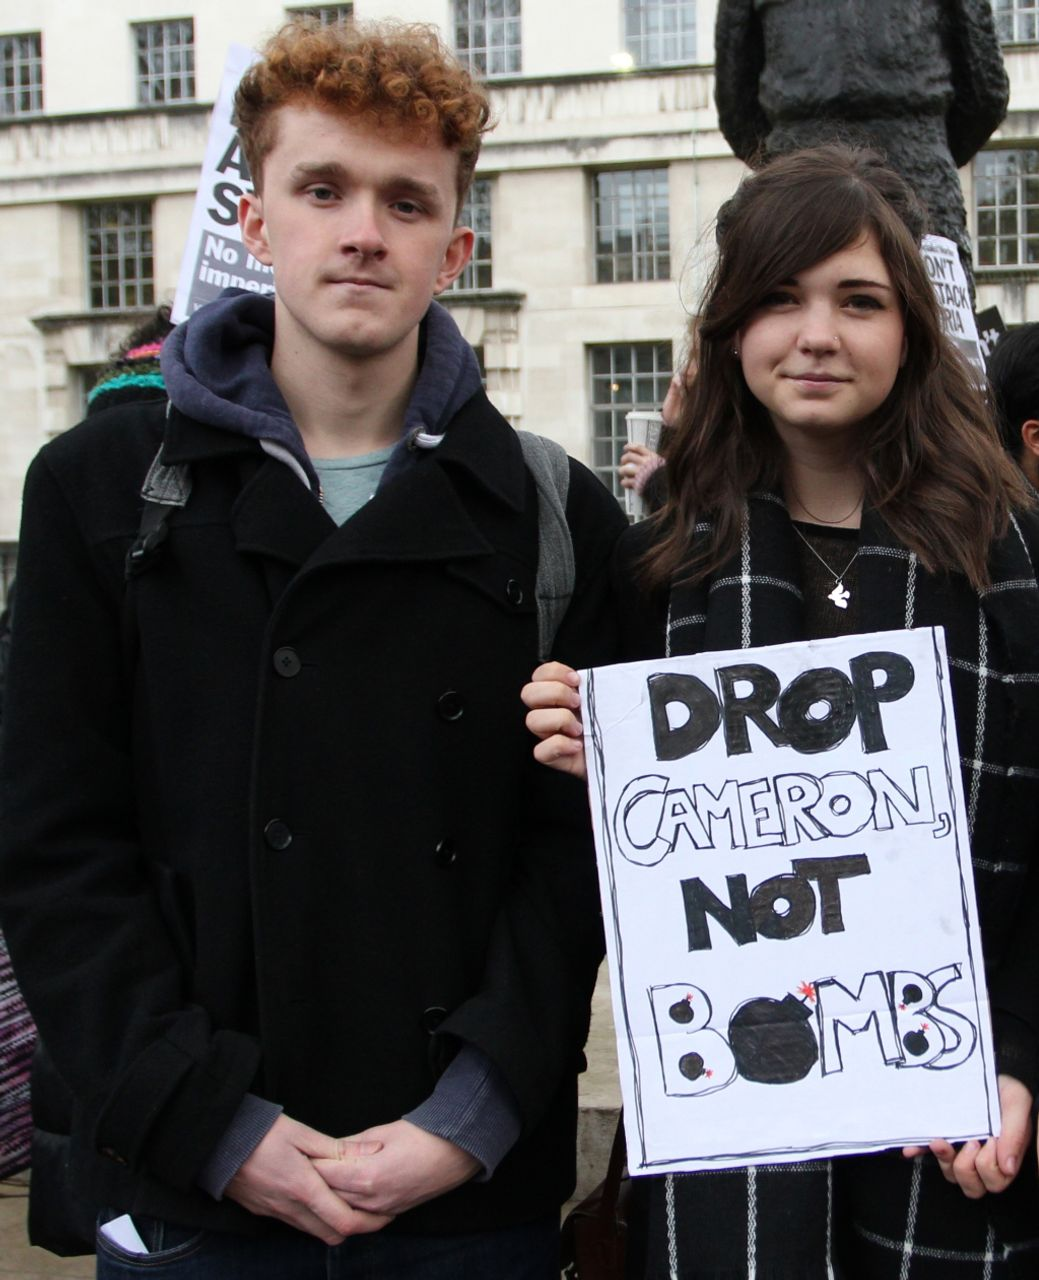 Sam and Amy, demonstrators in London against war on Syria